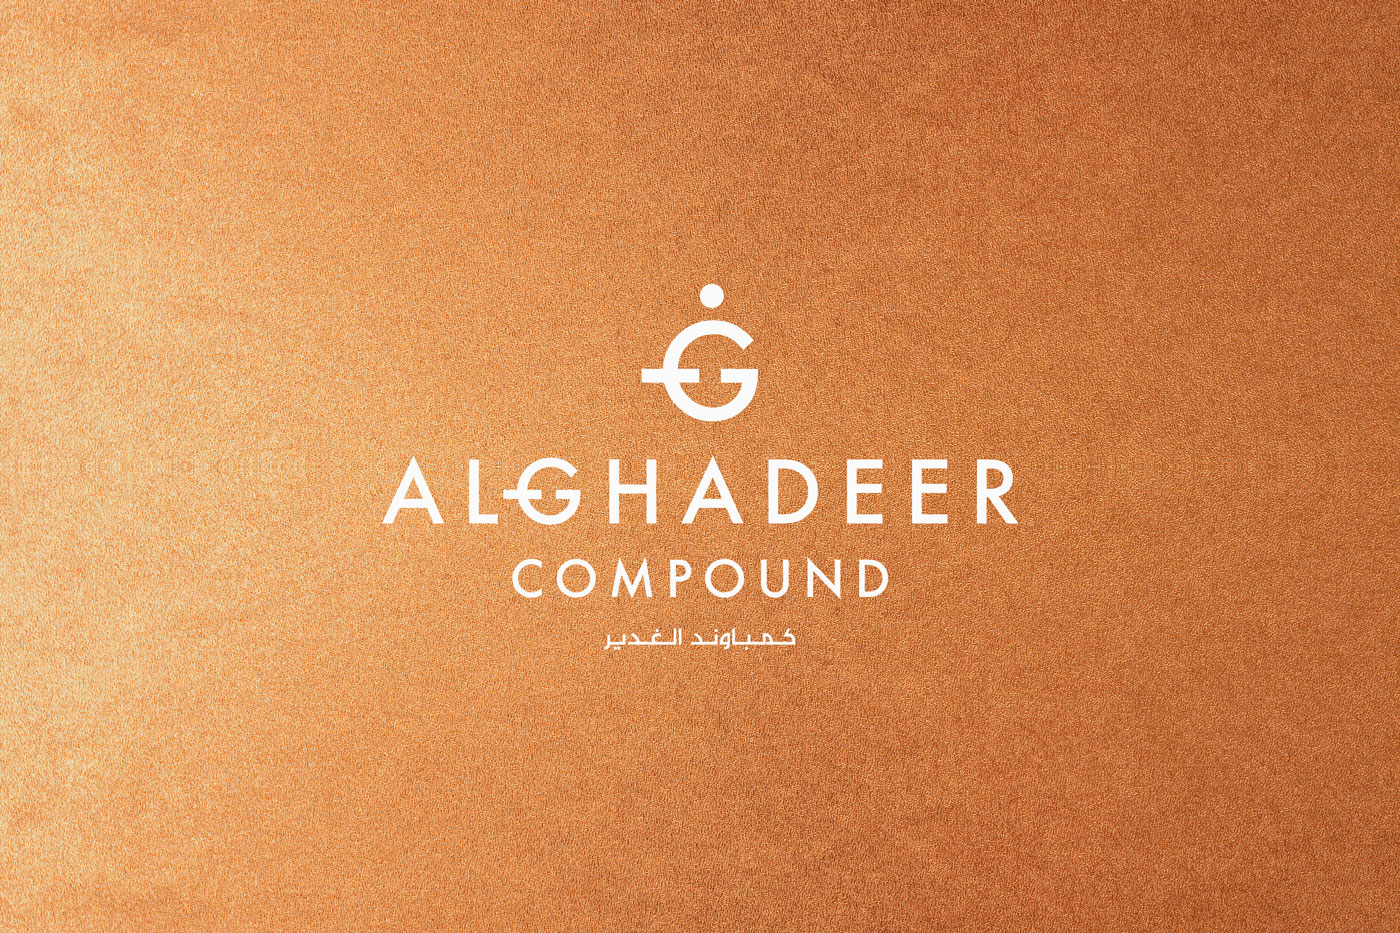 Alghadeer_Compound_Branding_k2_Work_By_YaStudio